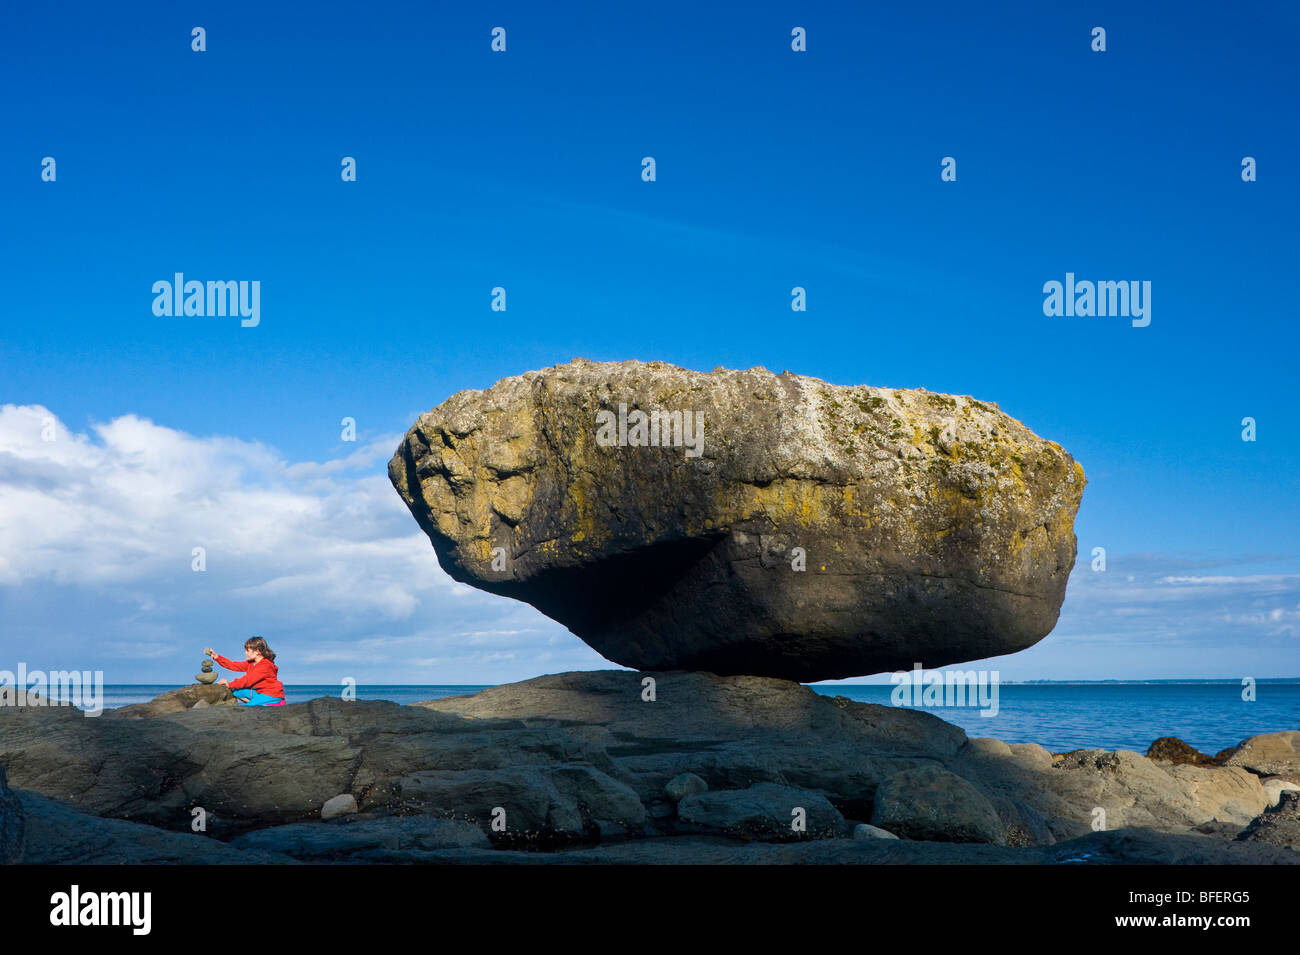 Balancing Rocks Stock Photos Balancing Rocks Stock Images Alamy